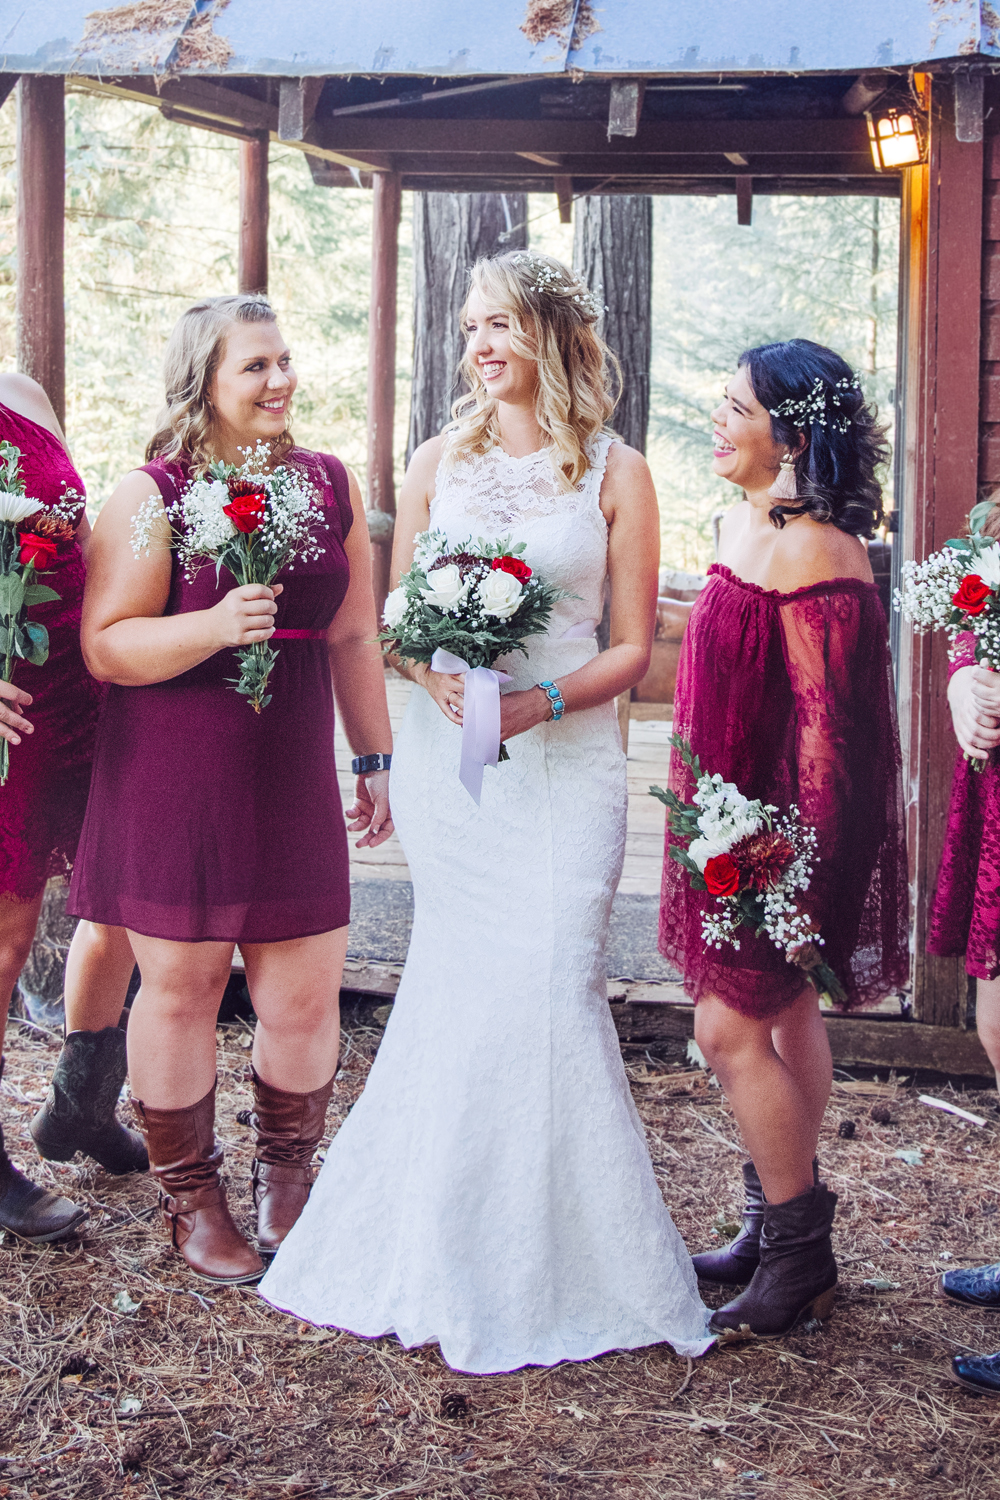 Rustic-Forest-Country-Wedding-Chico-CA64.jpg